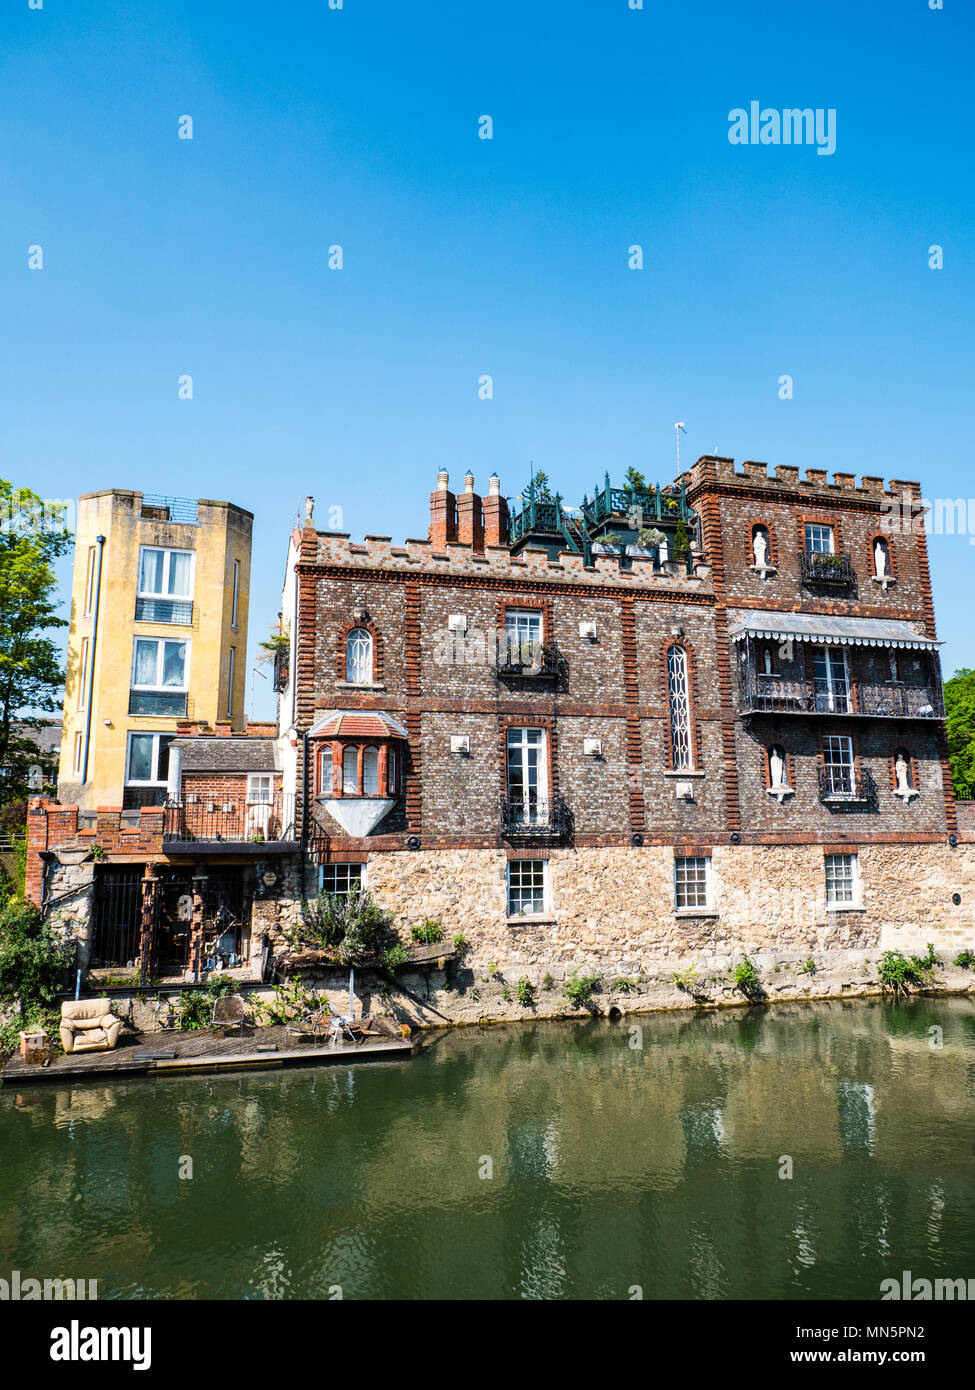 Houses on River Thames nr Folly Bridge, Oxford, Oxfordshire, England, UK, GB. - Stock Image